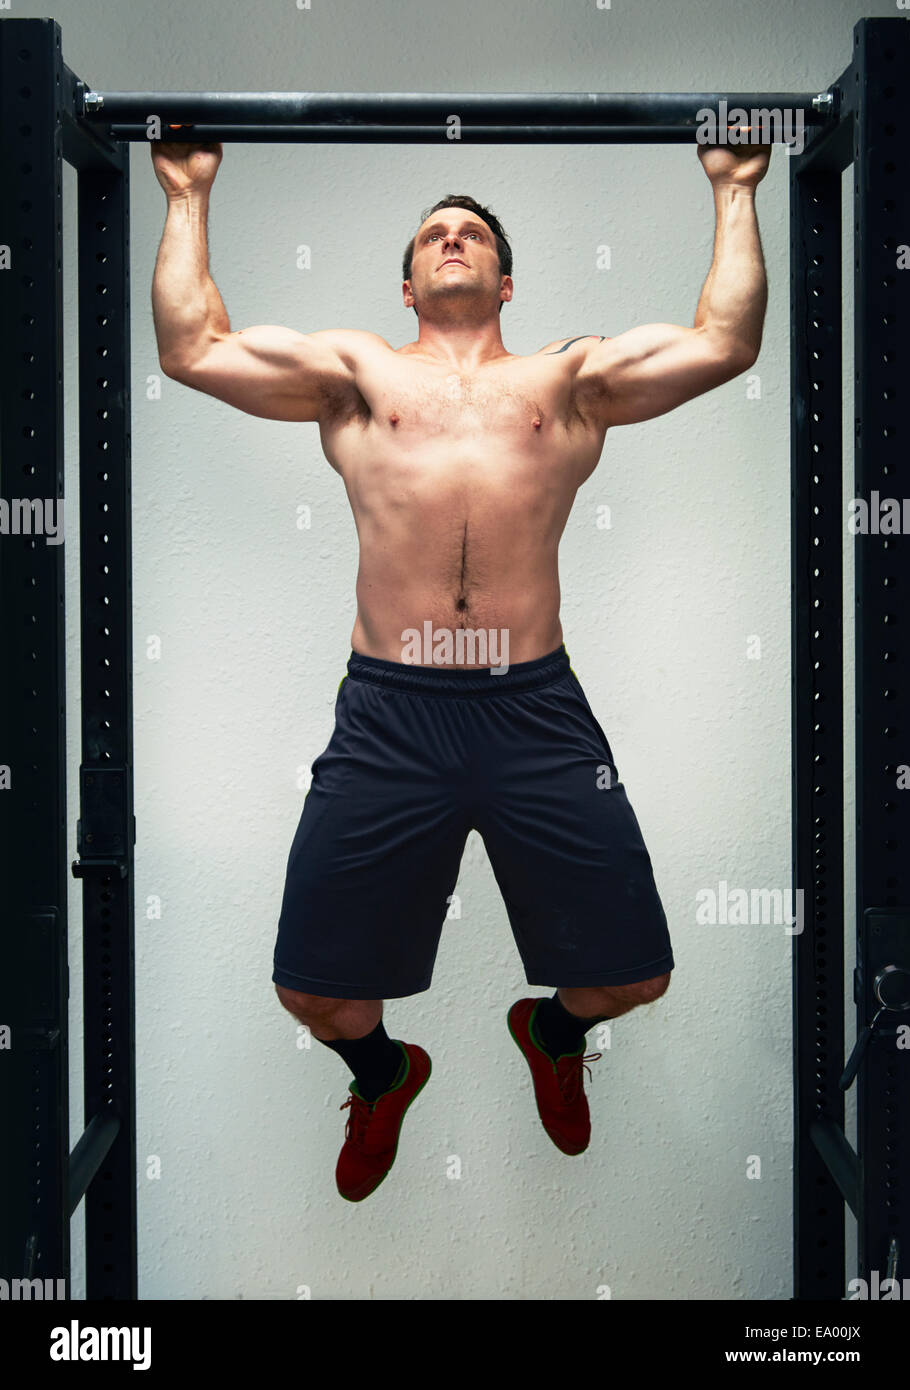 Mid adult male doing pull ups on exercise bar in gym - Stock Image